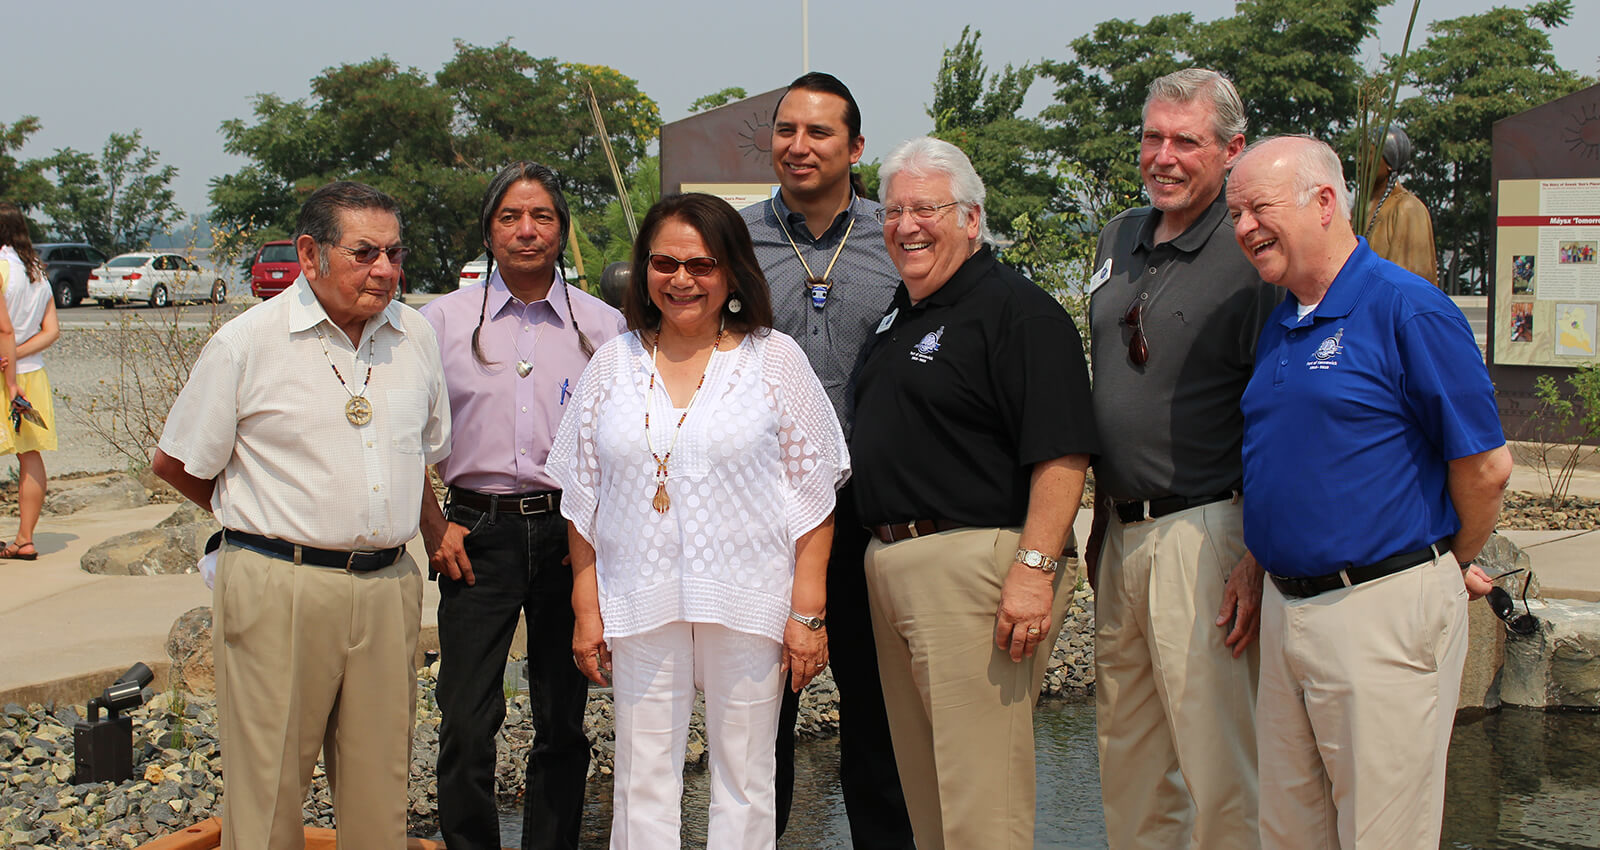 Port and Tribal officials at The Gathering Place.